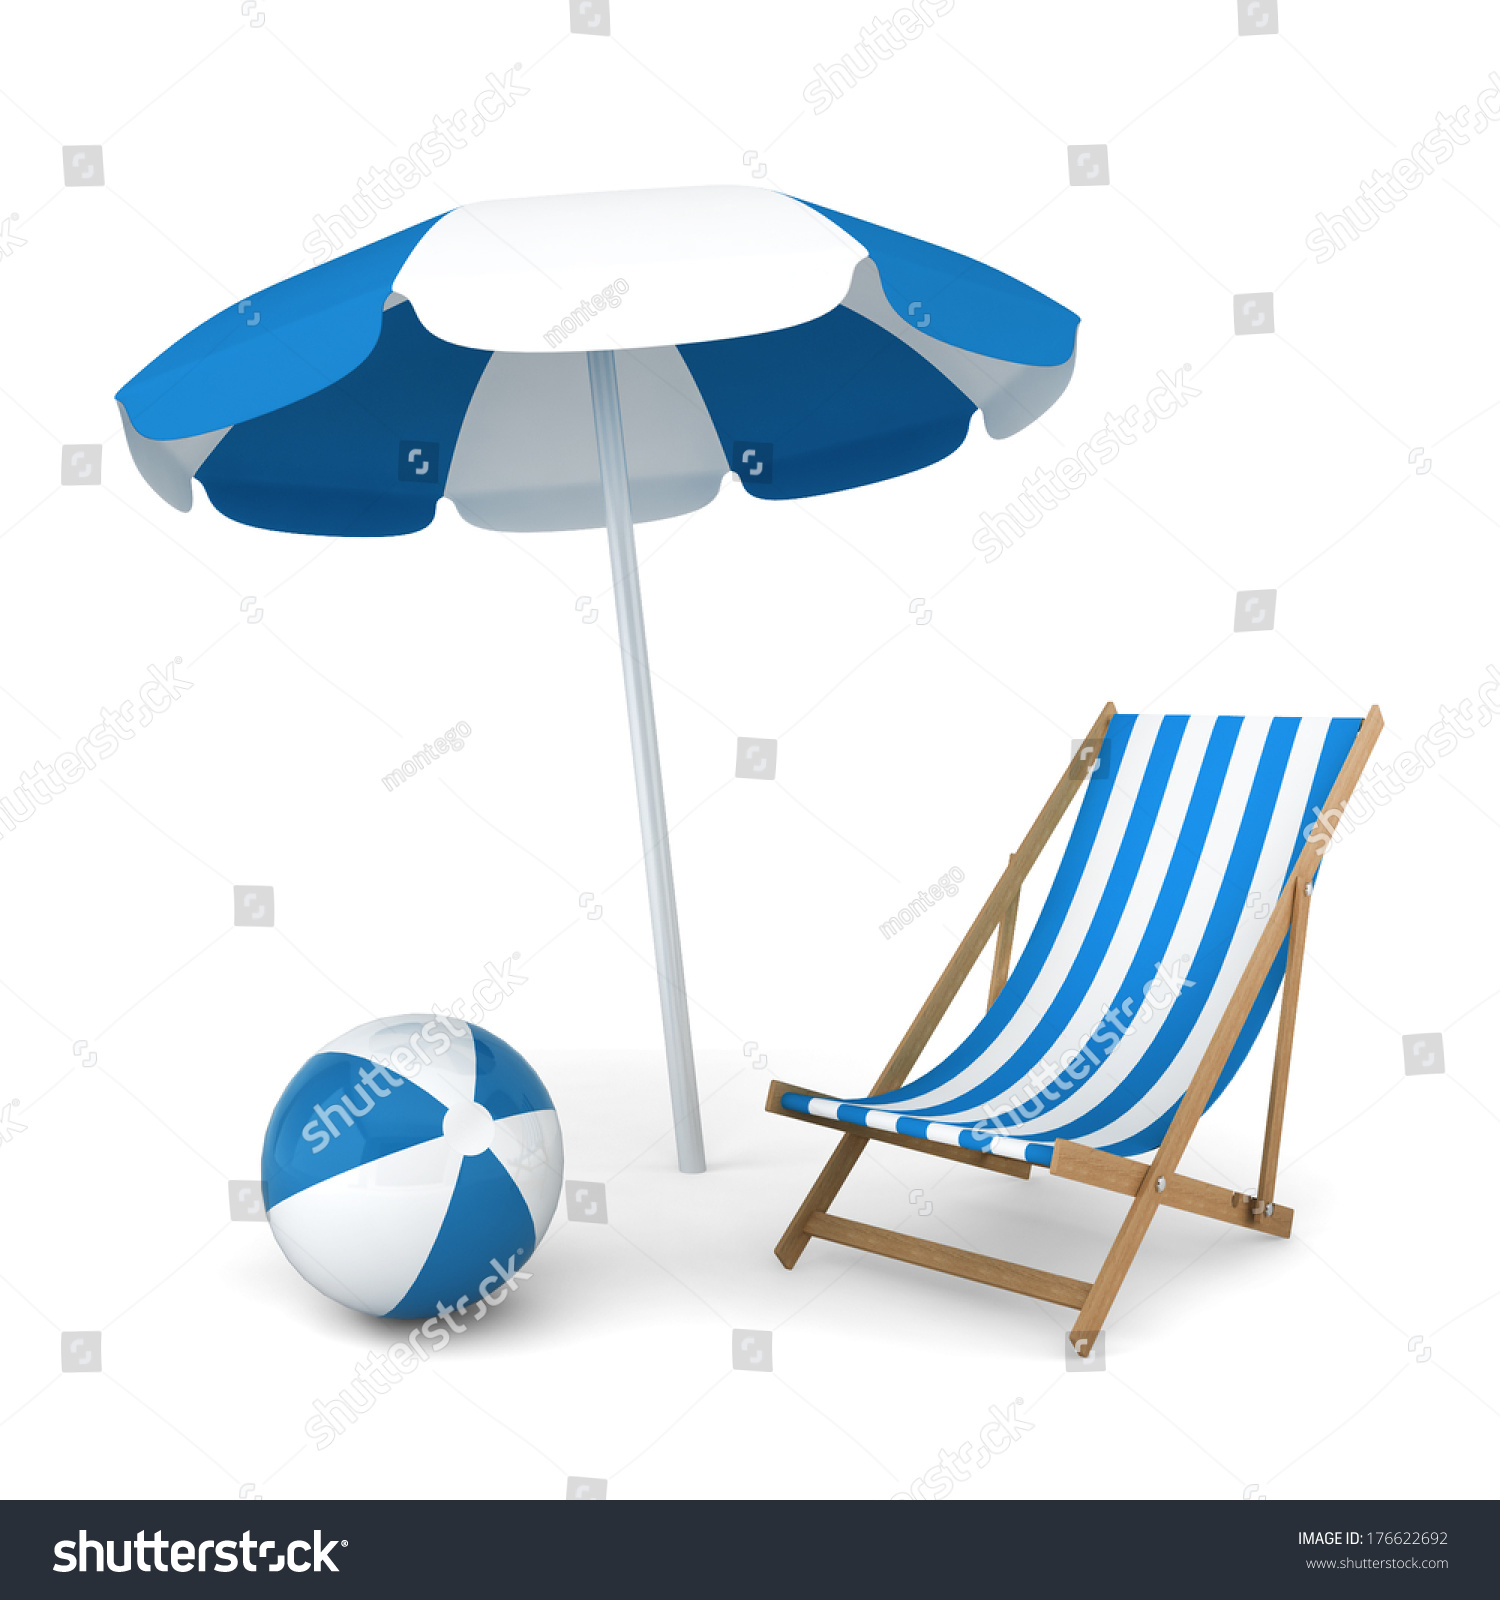 Beach umbrella and chair black and white - Beach Umbrella Chair And Ball Summer Vacation Concept 3d Illustration On White Background